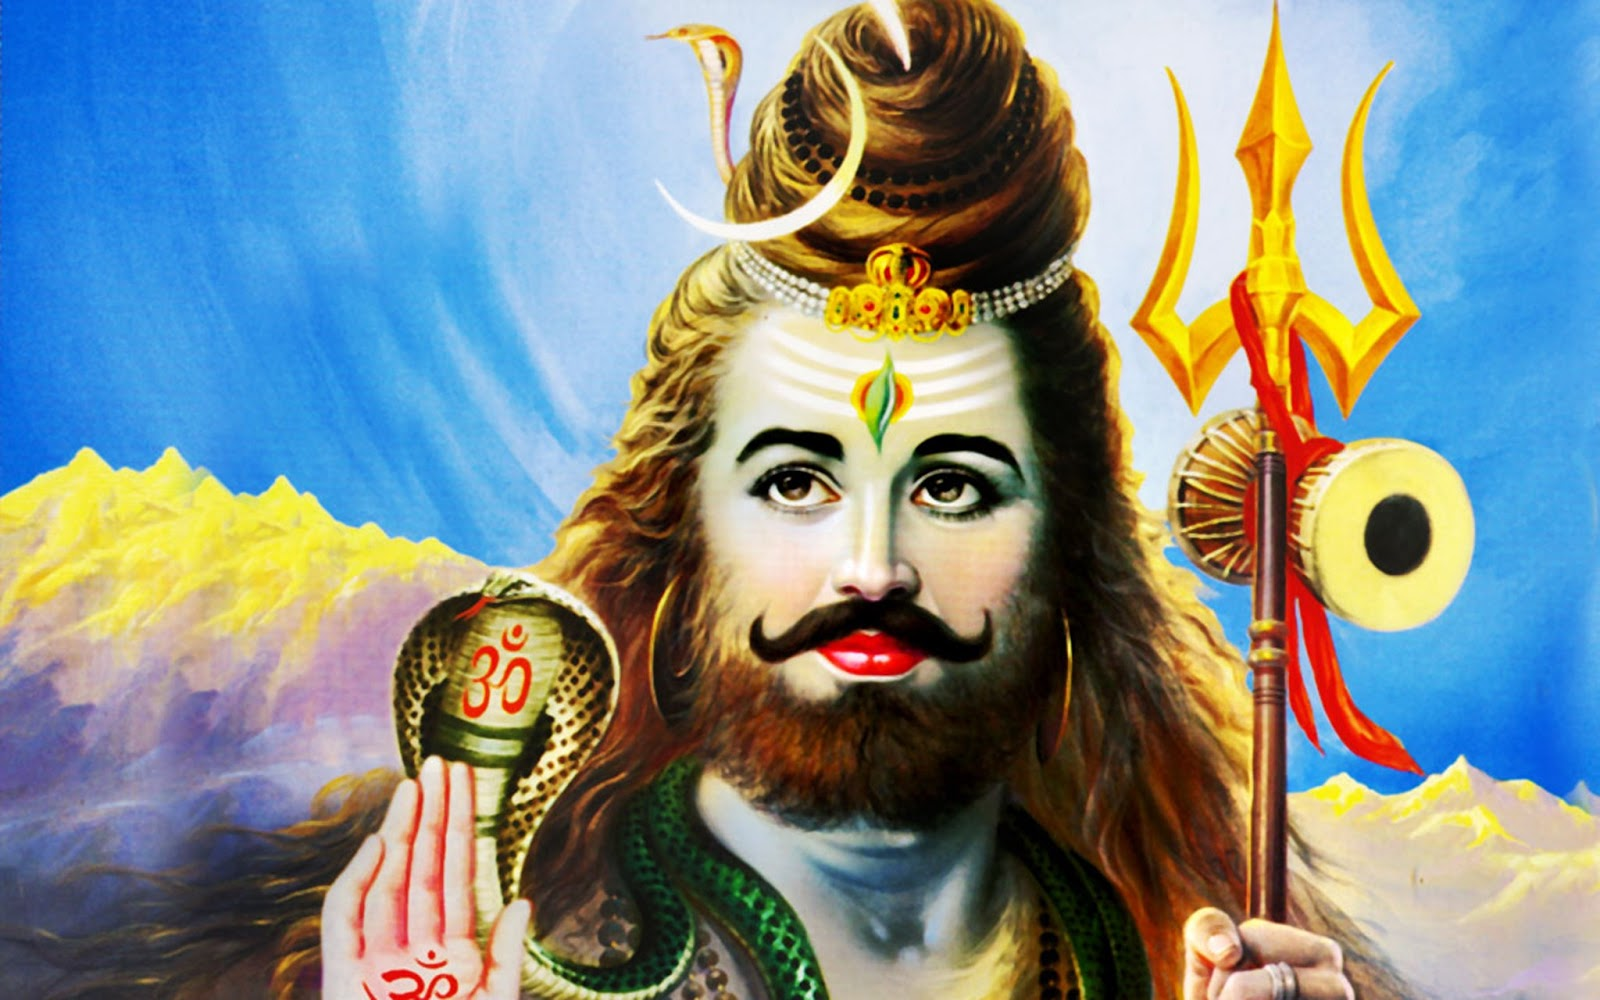 Lord Shiva Wallpapers Hd Free Download For Desktop Full